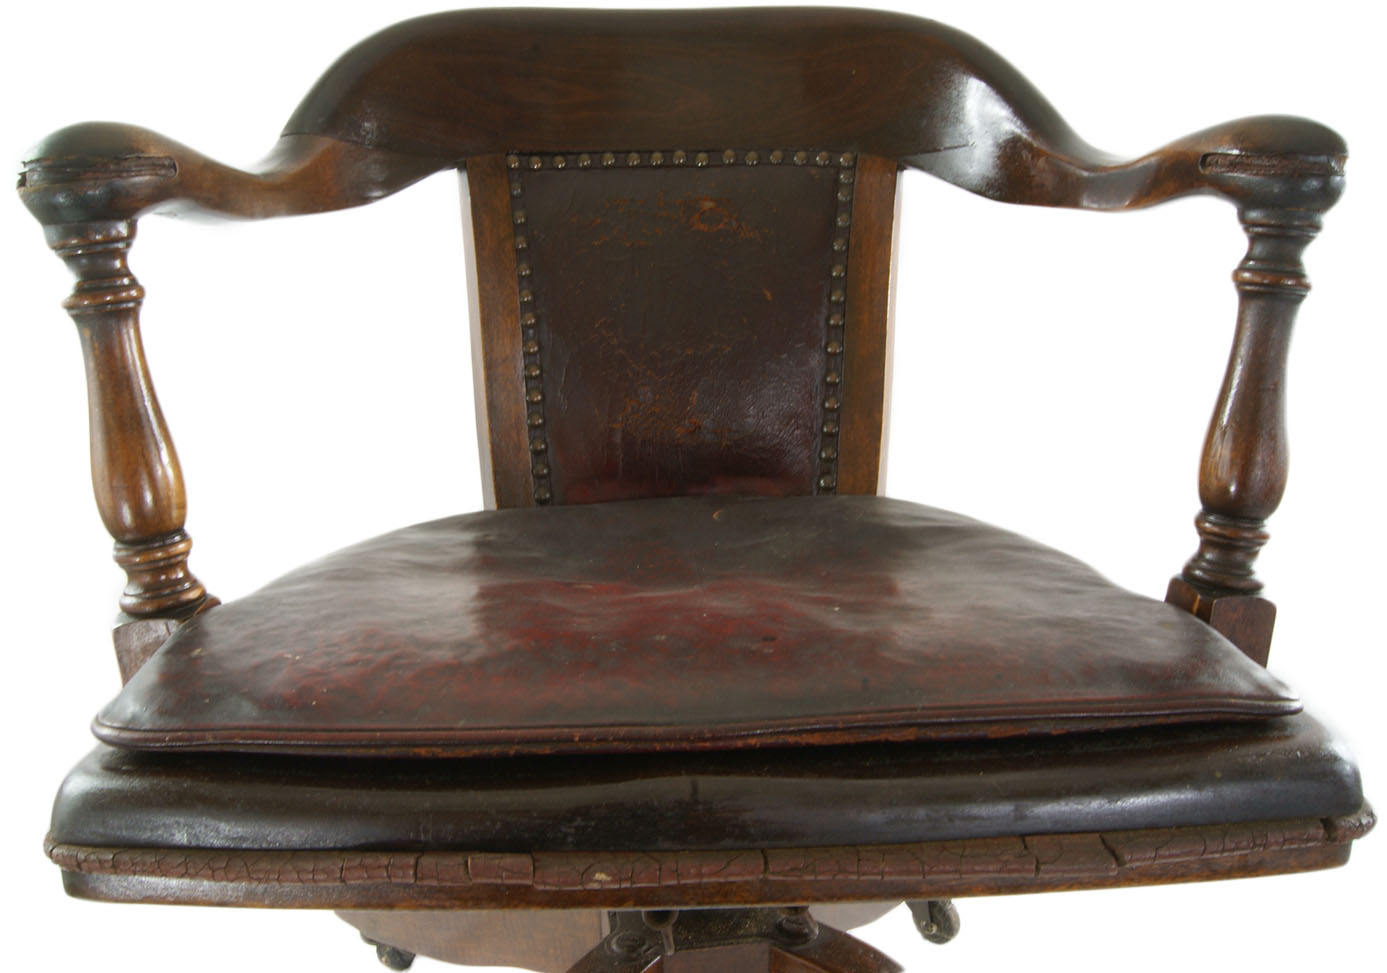 Attirant Antique Bankers Chair, Original Leather Seat Cushion